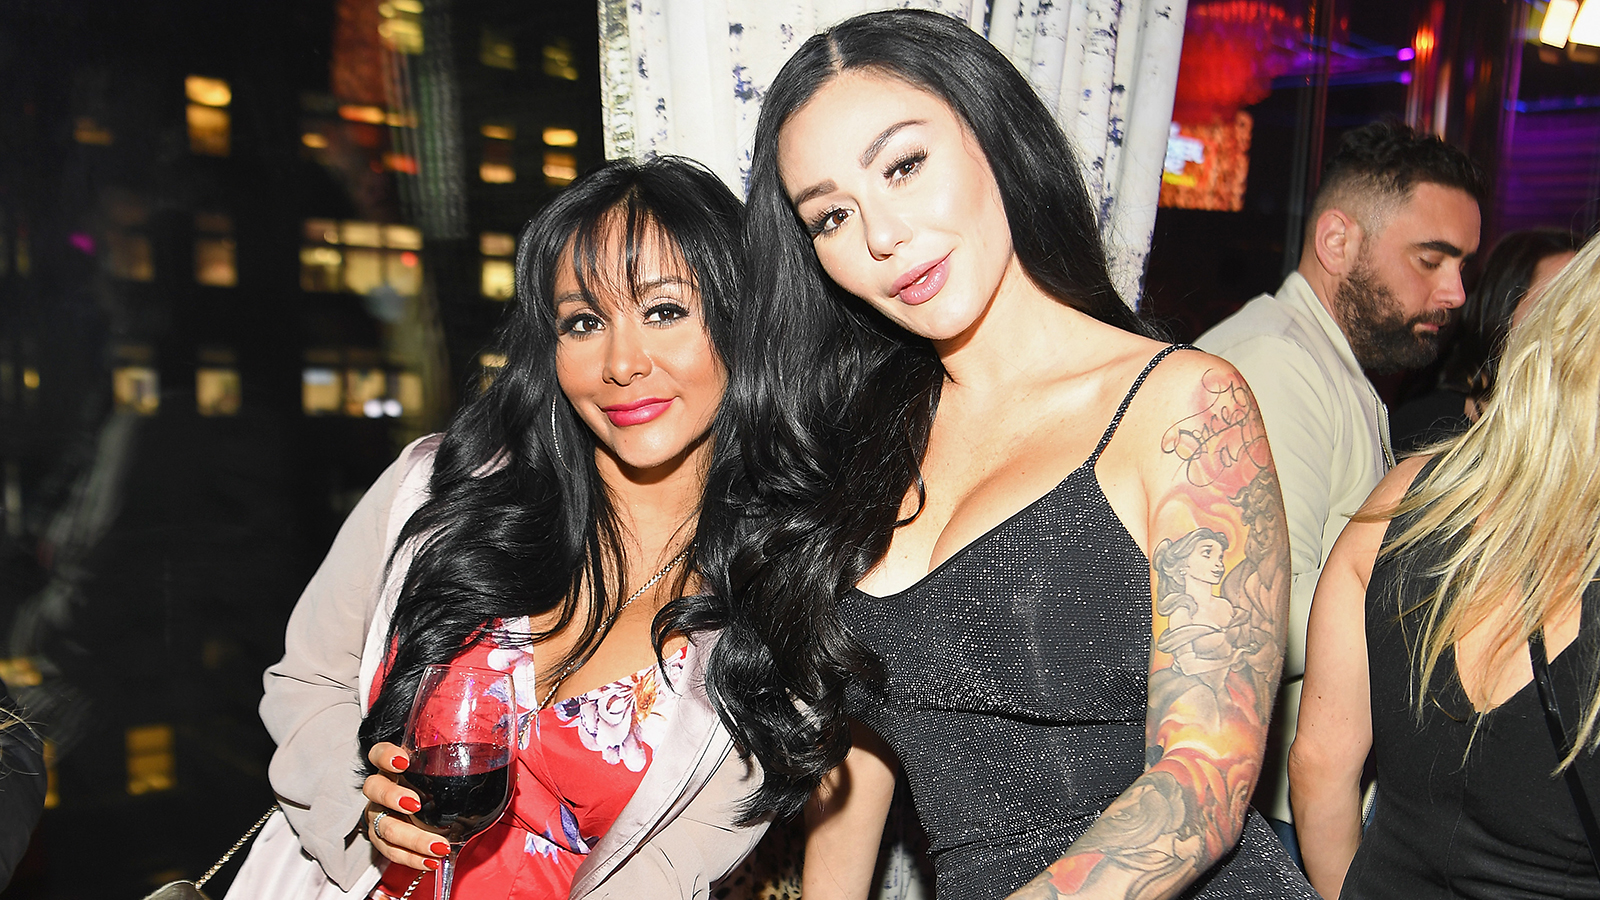 """""""snooki-defends-her-jersey-shore-co-star-j-woww-by-postage-footage-of-her-bff-talking-to-the-police-after-dispute-with-roger-mathews"""""""